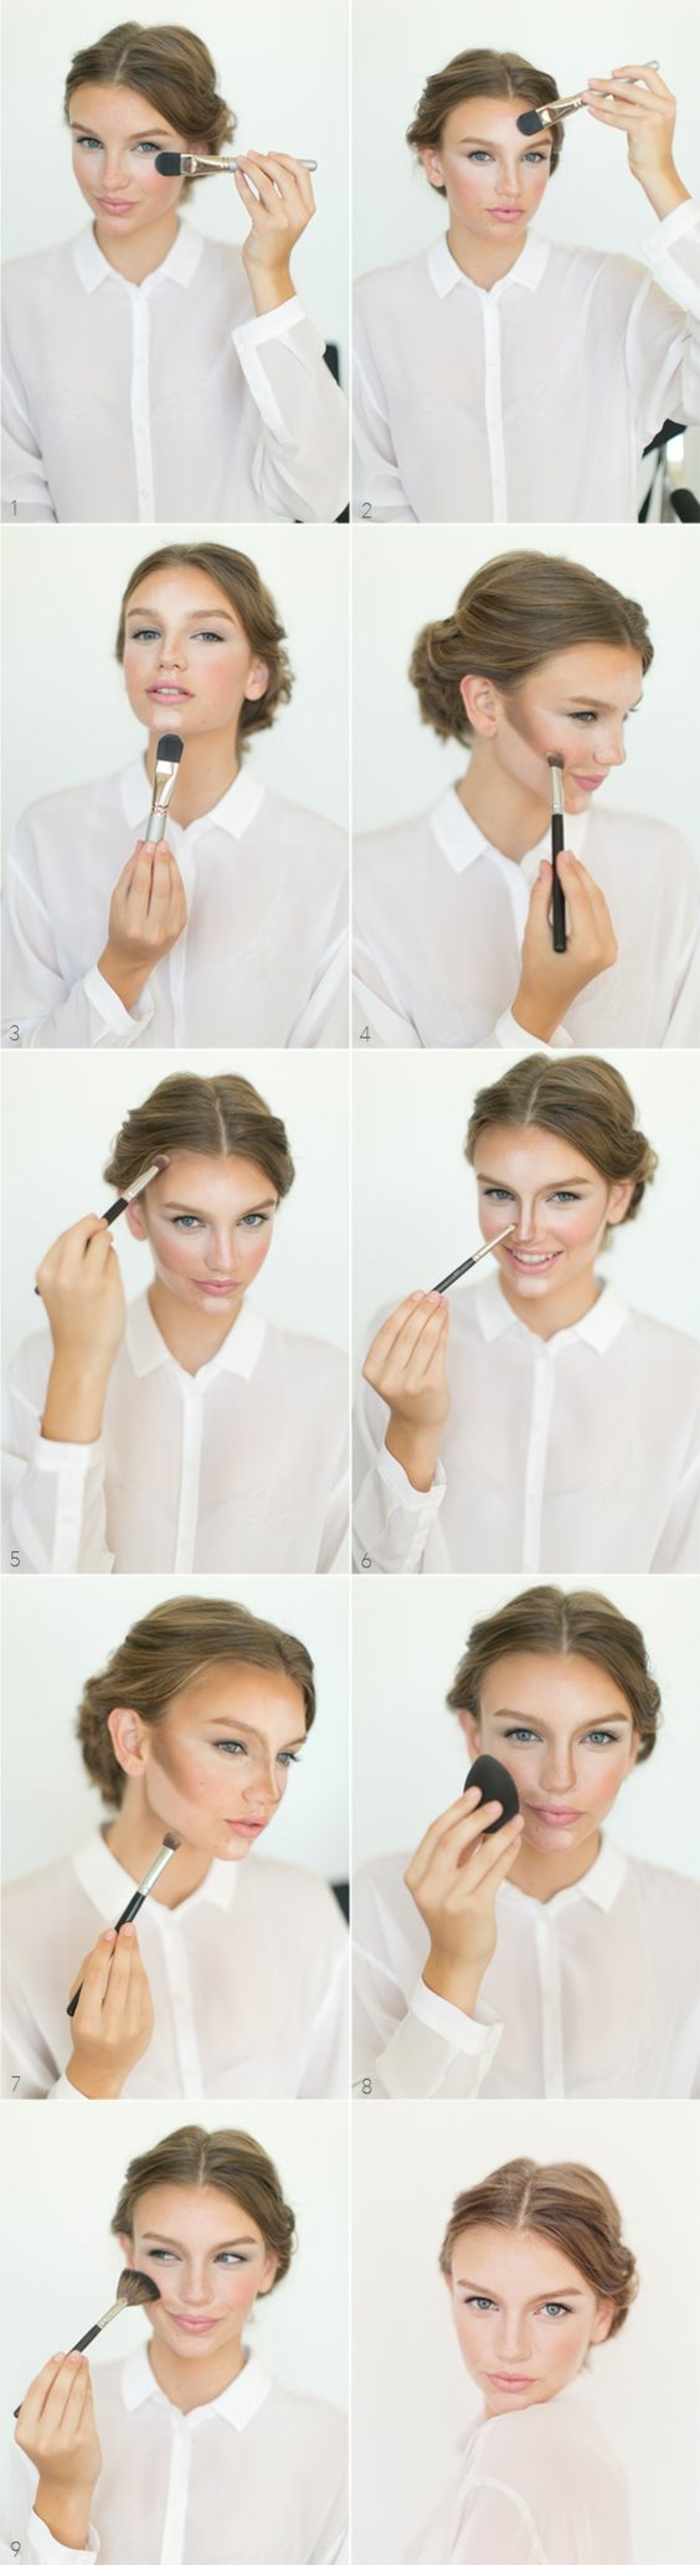 """No makeup look"" avec un maquillage discret! Maquillage"